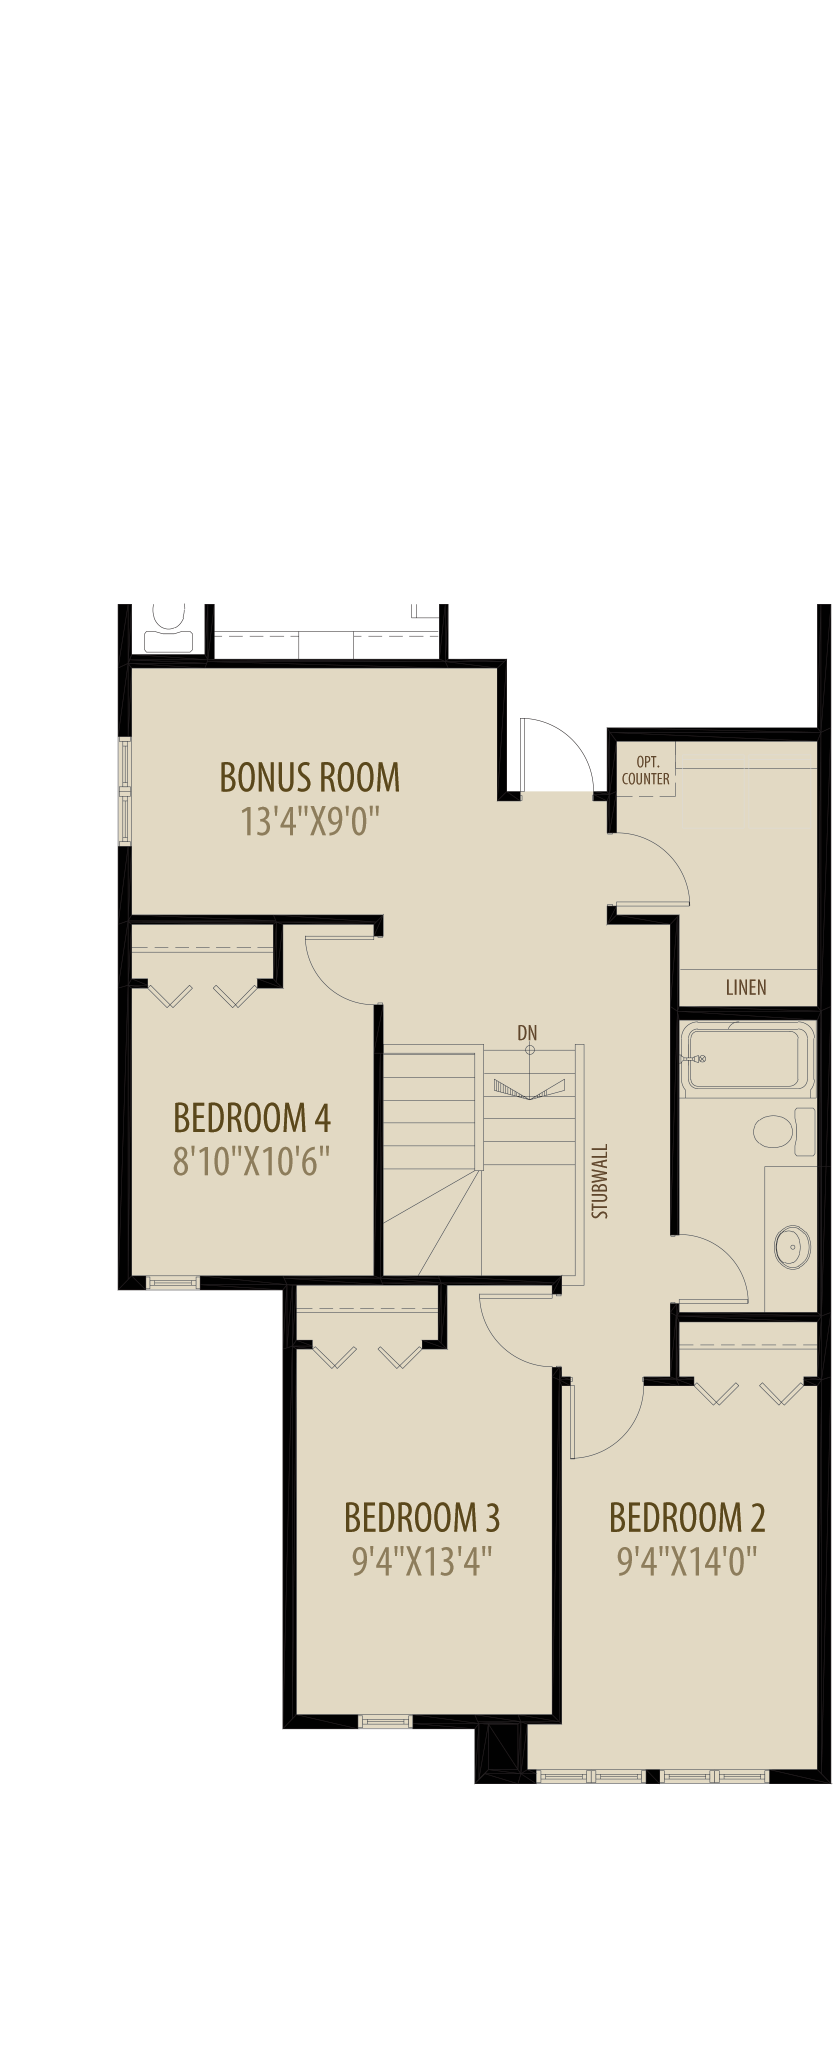 Option 4 4th Bedroom Revised adds 100 sq ft